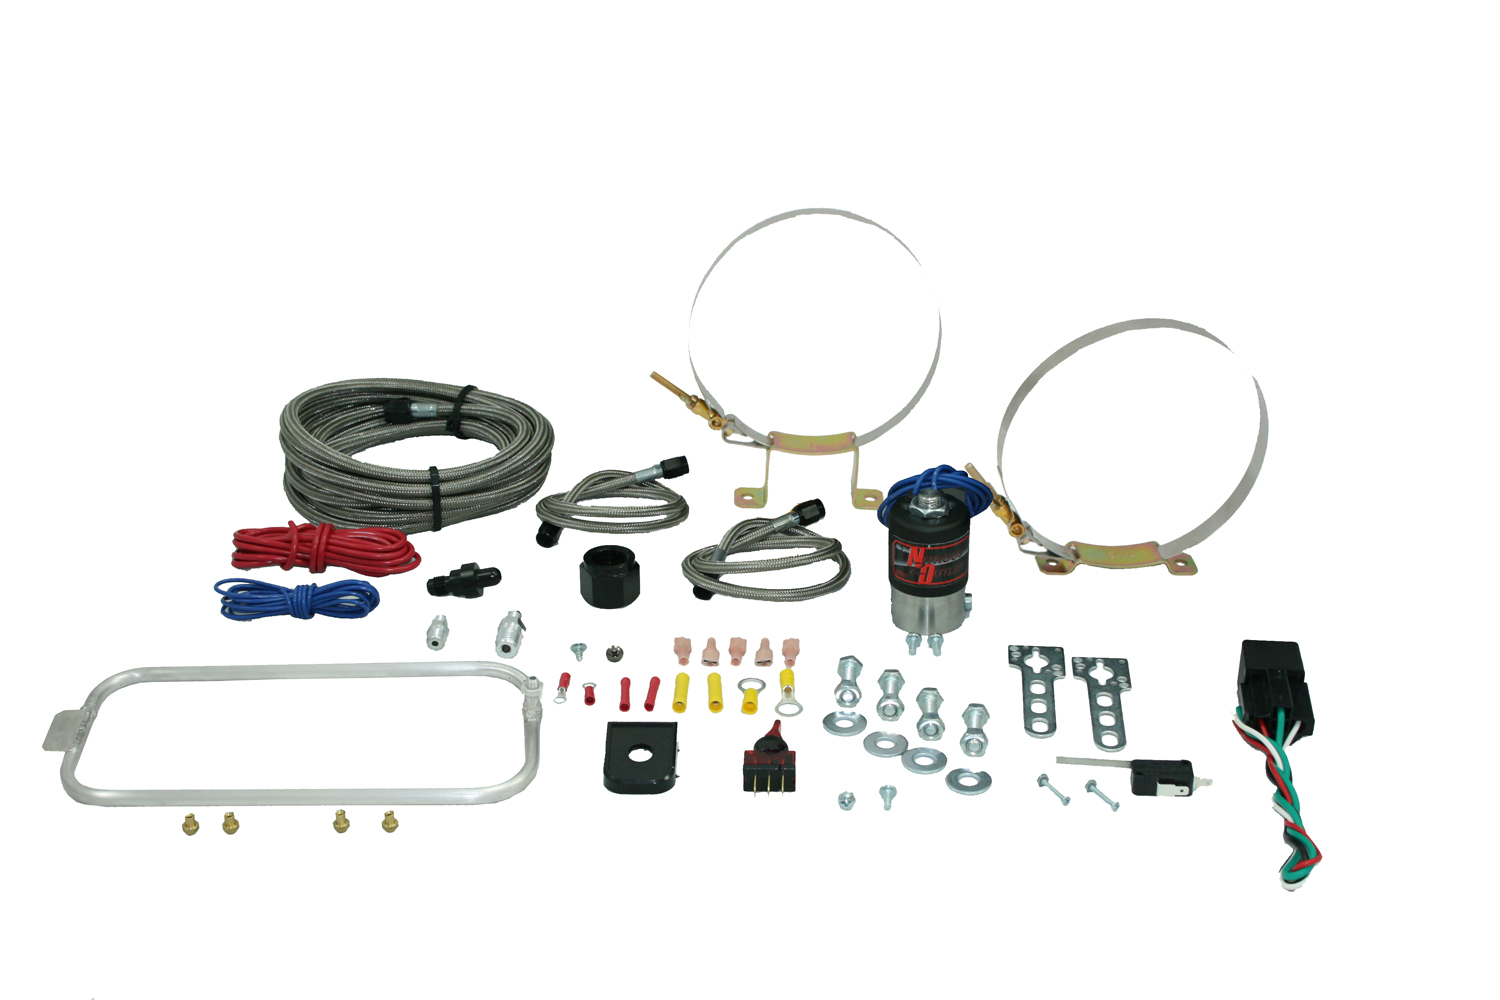 98-02 Nitrous Outlet LS1 FBody Hidden Dry Nitrous Halo System (No Bottle)